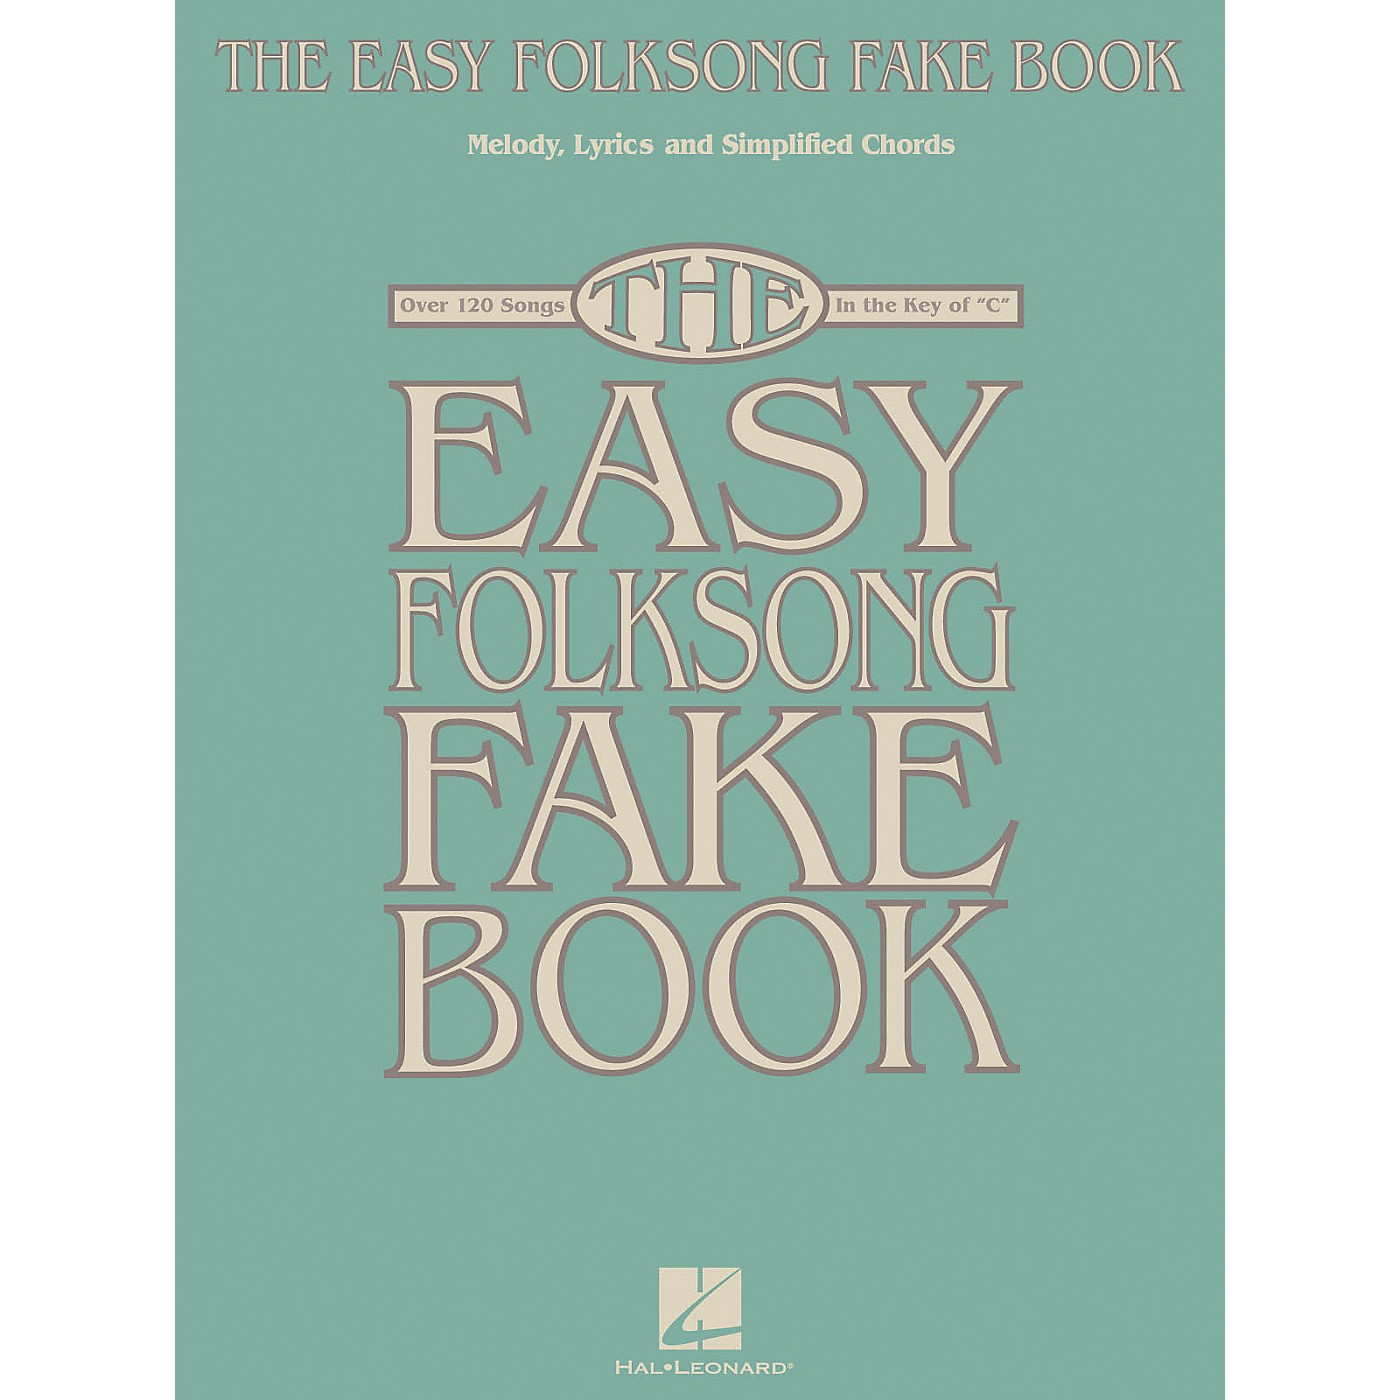 Hal Leonard The Easy Folksong Fake Book - Over 120 Songs In The Key Of C thumbnail